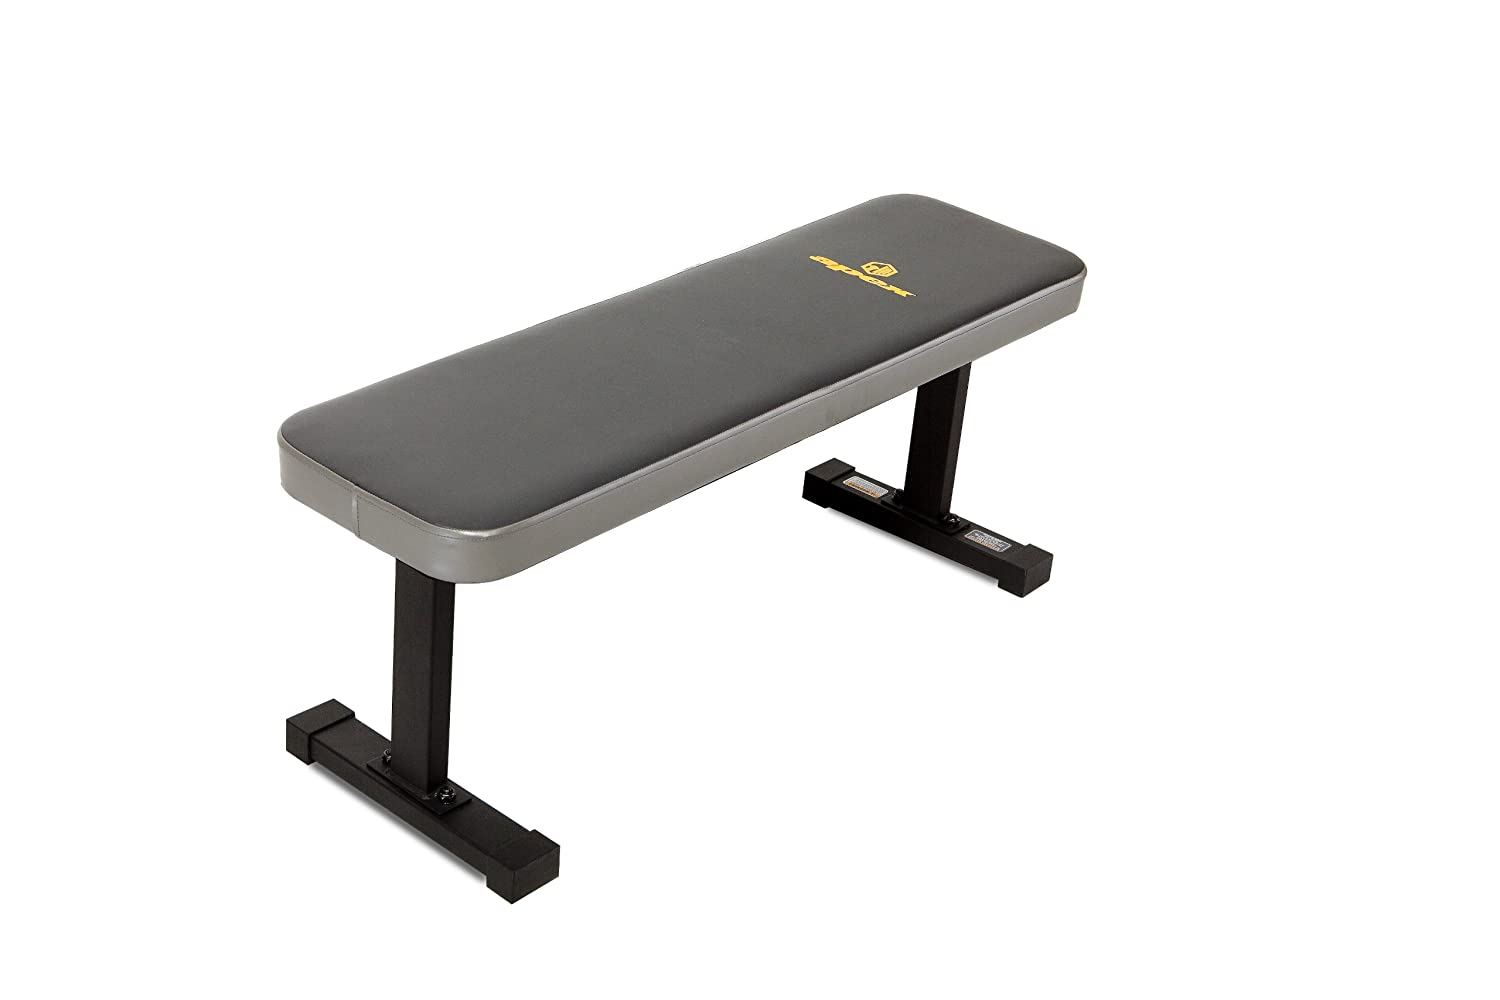 New Heavy Duty Sturdy Flat Bench Free Weights Back Ab Workout Weight Exercise Ebay